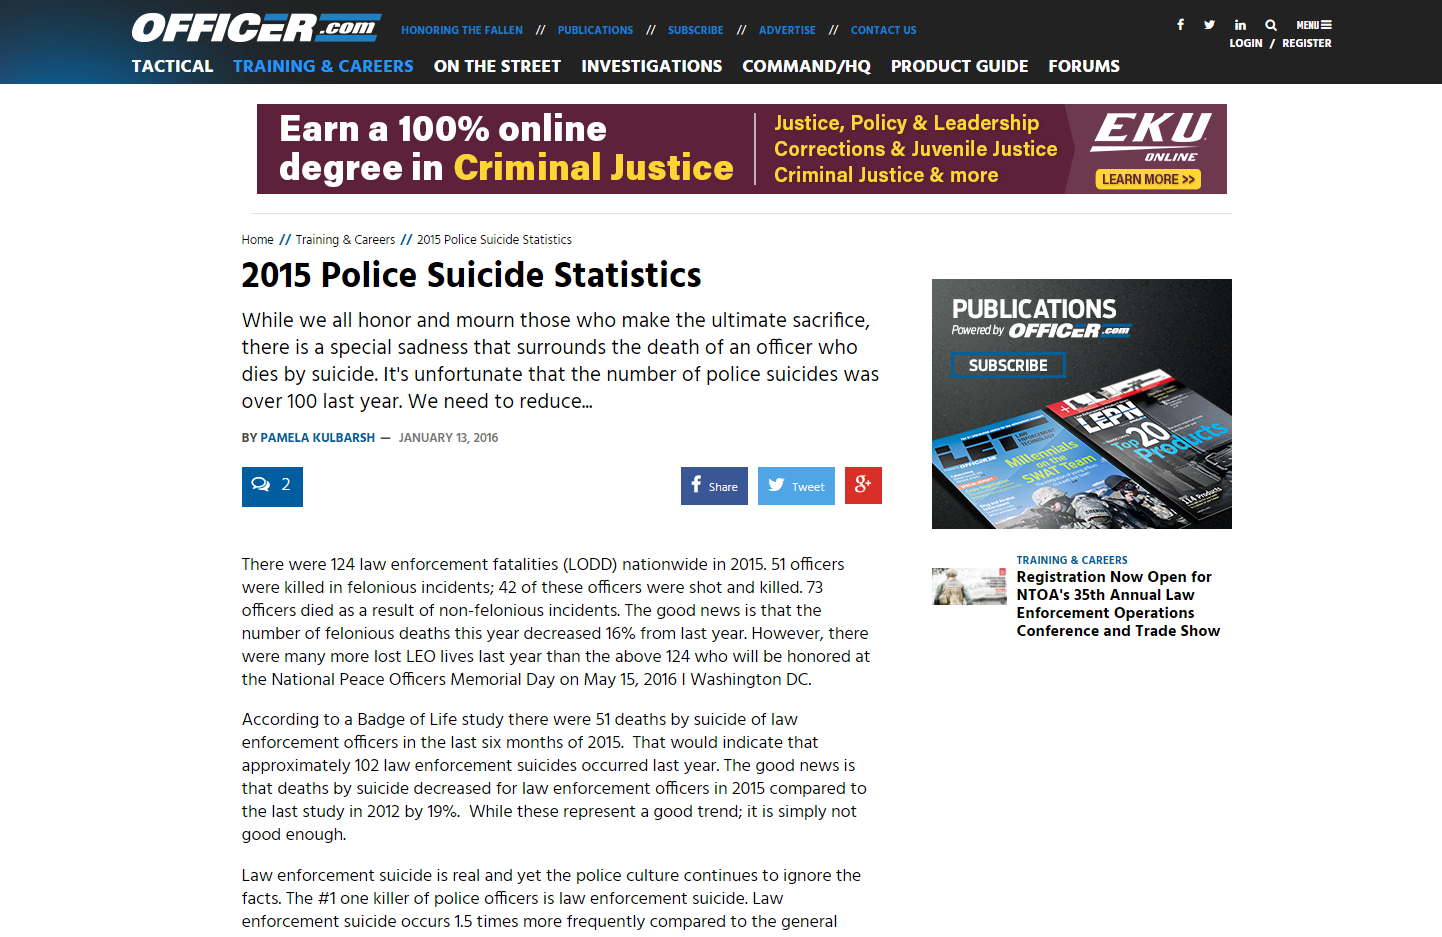 Website for learning about police suicide statistics from 2015